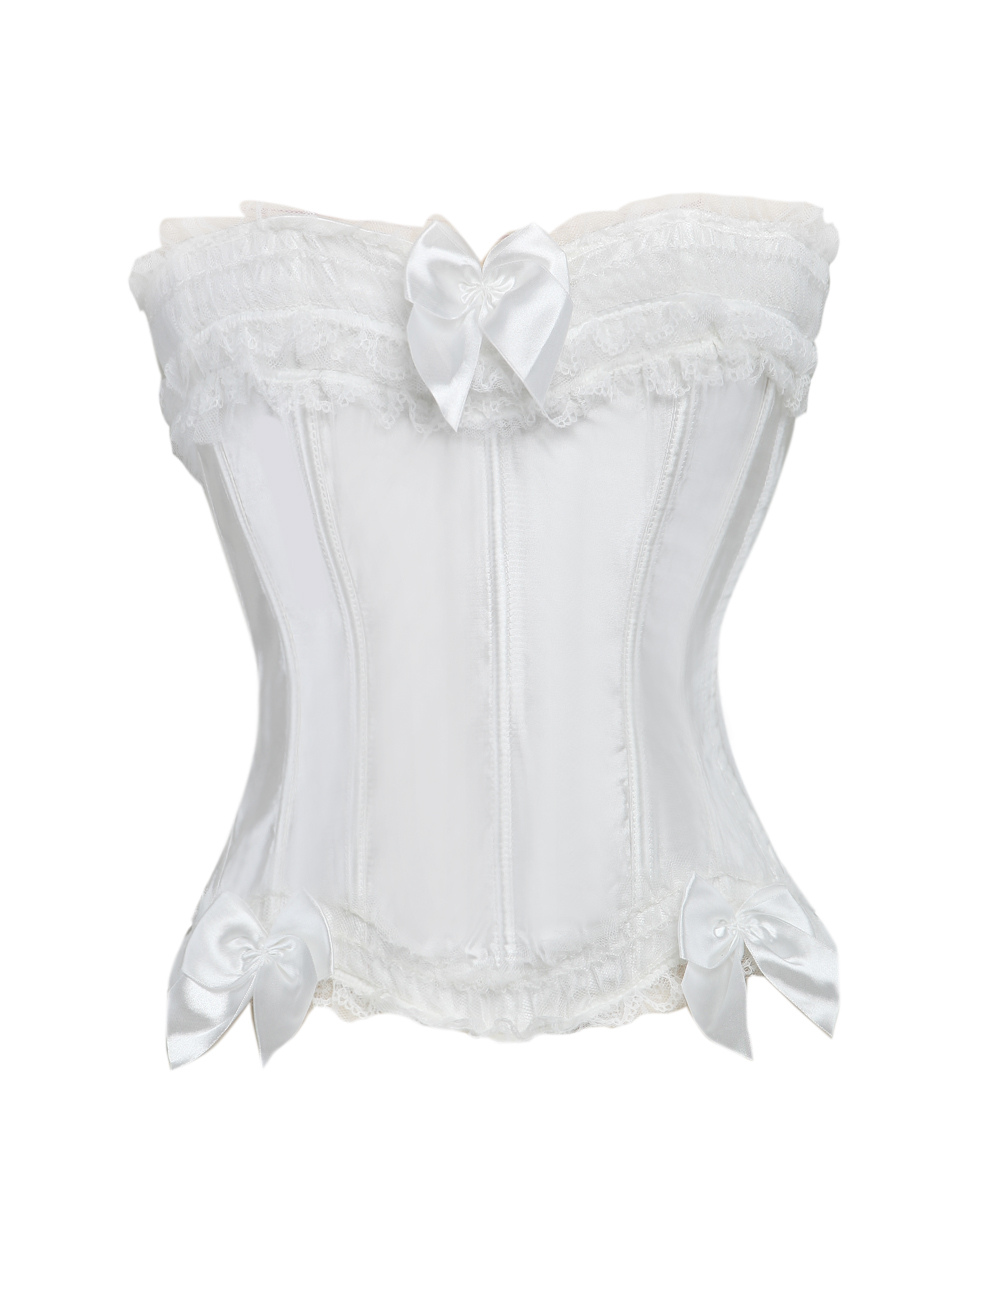 Buy Side Clasp Lace Silk Like Satin Plastic Boning Womens Bustier for $15.99 in Milanoo store